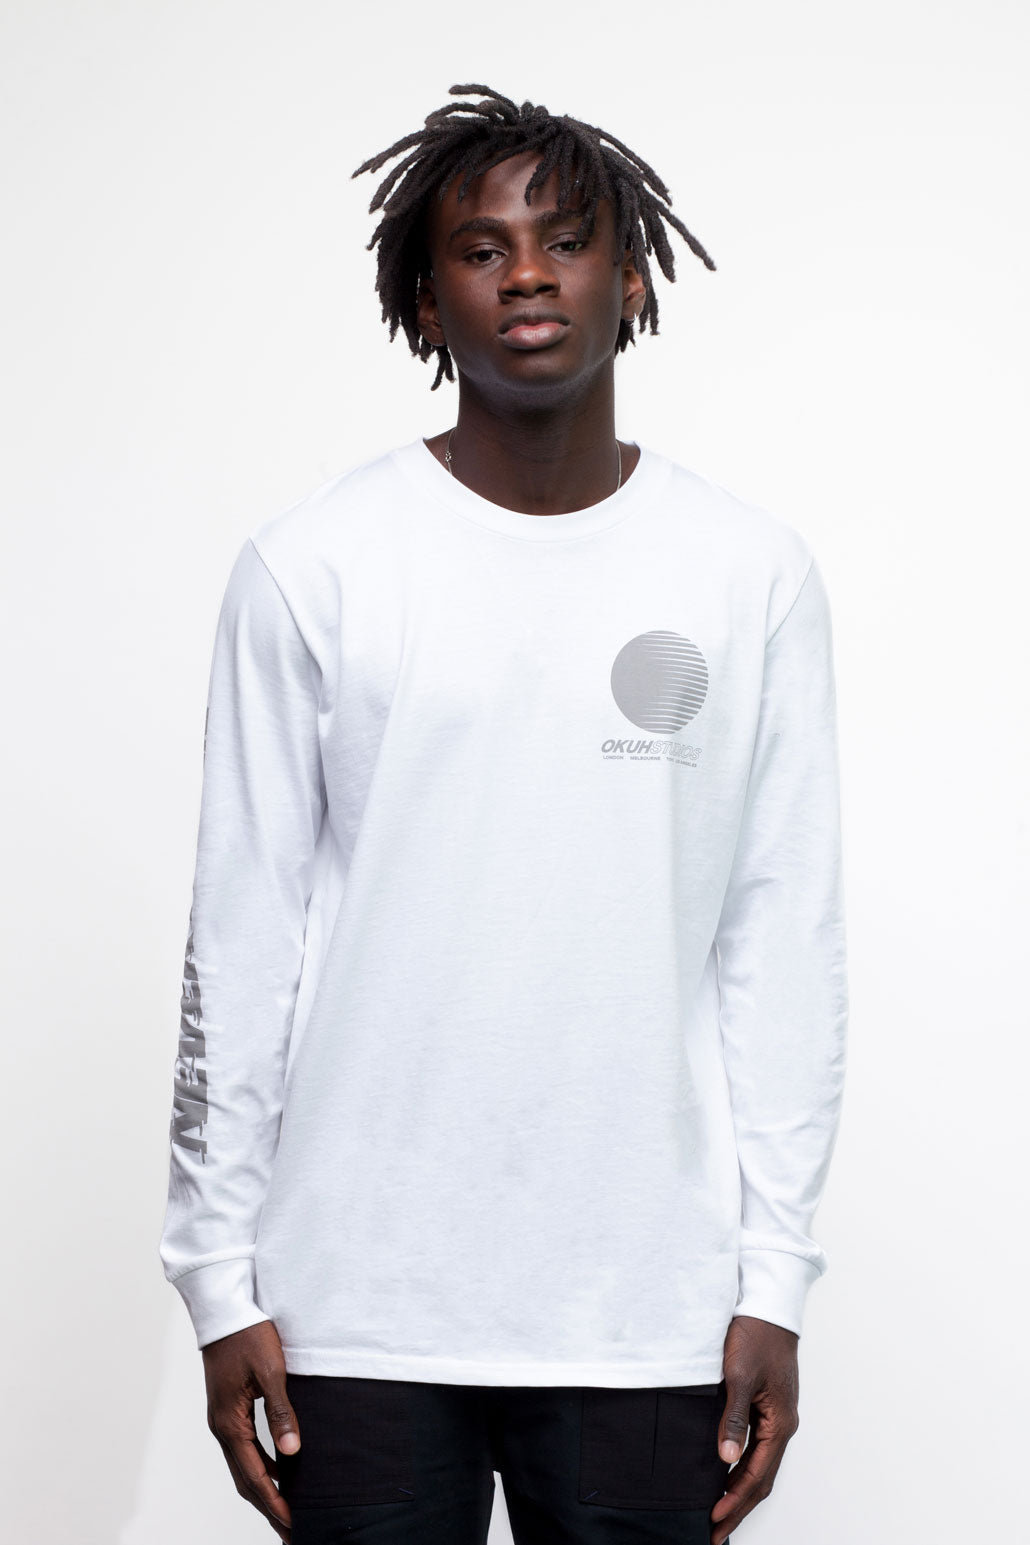 White Never Again Longsleeve T-shirt by Okuh Studios, mens streetwear fashion brand, Front Worn